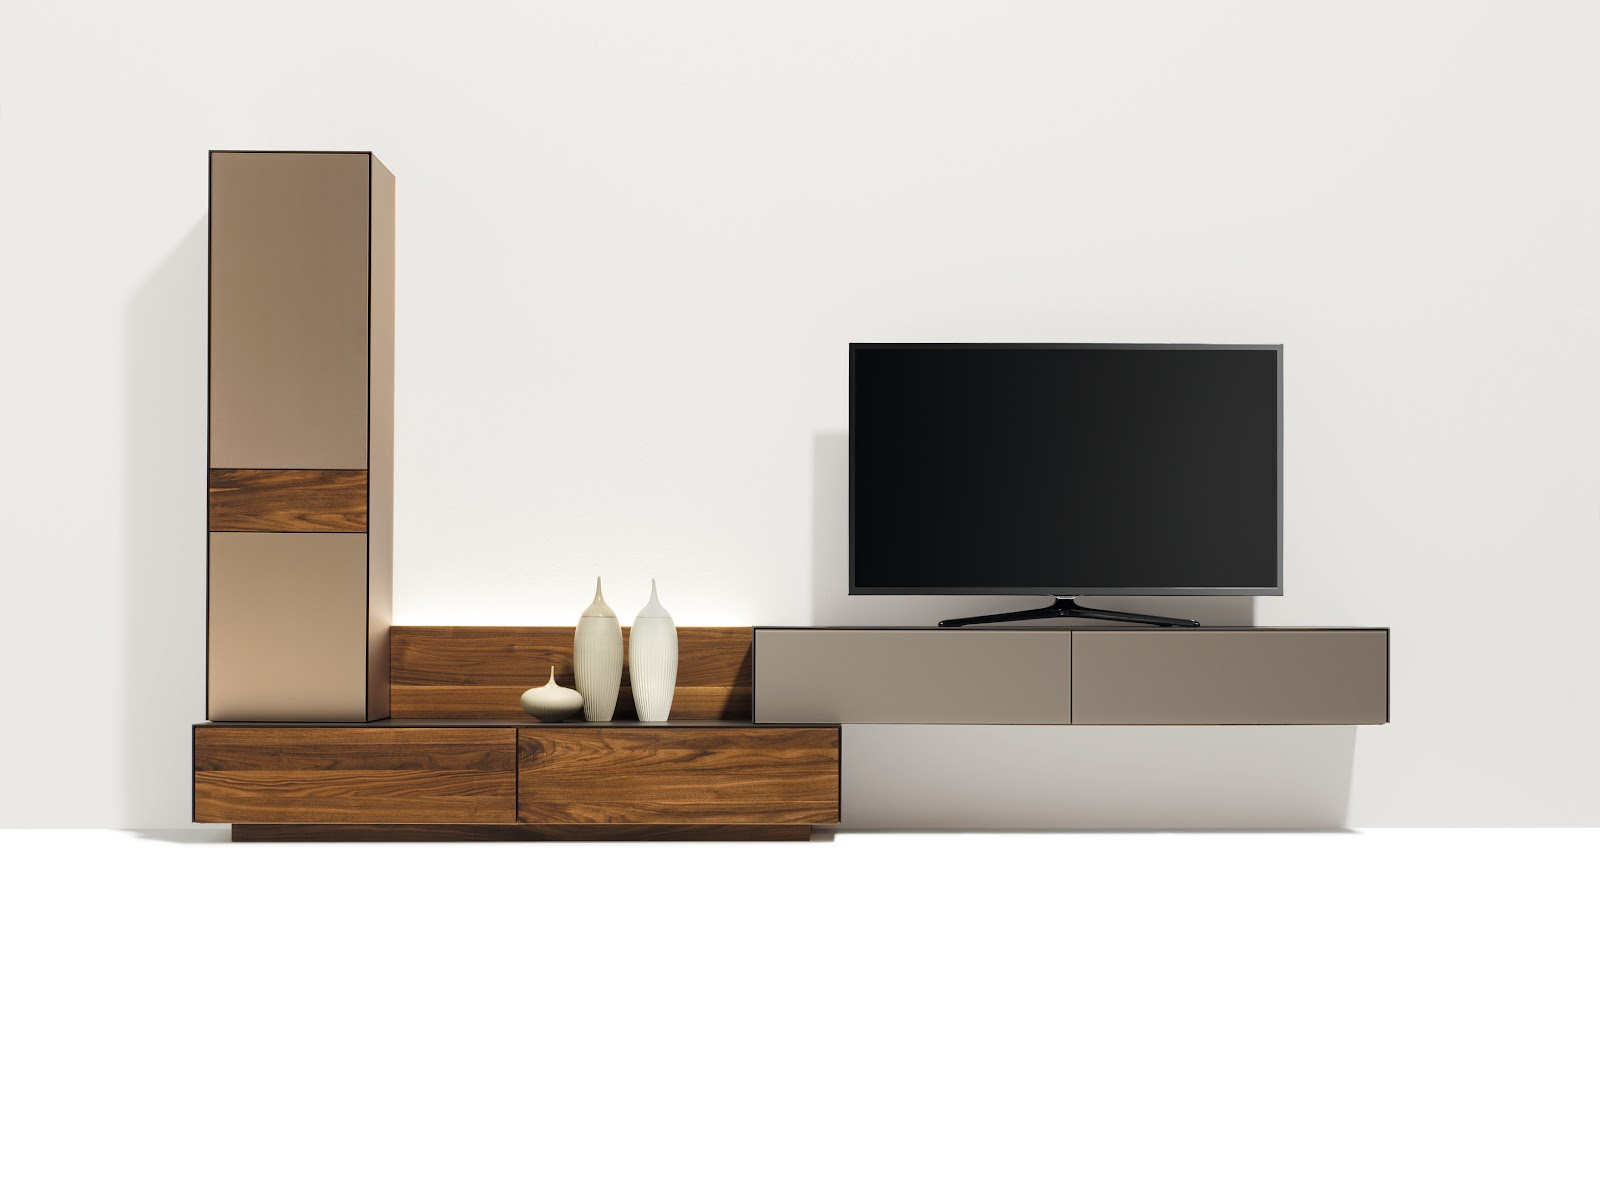 cubus zwevende tv kast noordkaap meubelen. Black Bedroom Furniture Sets. Home Design Ideas